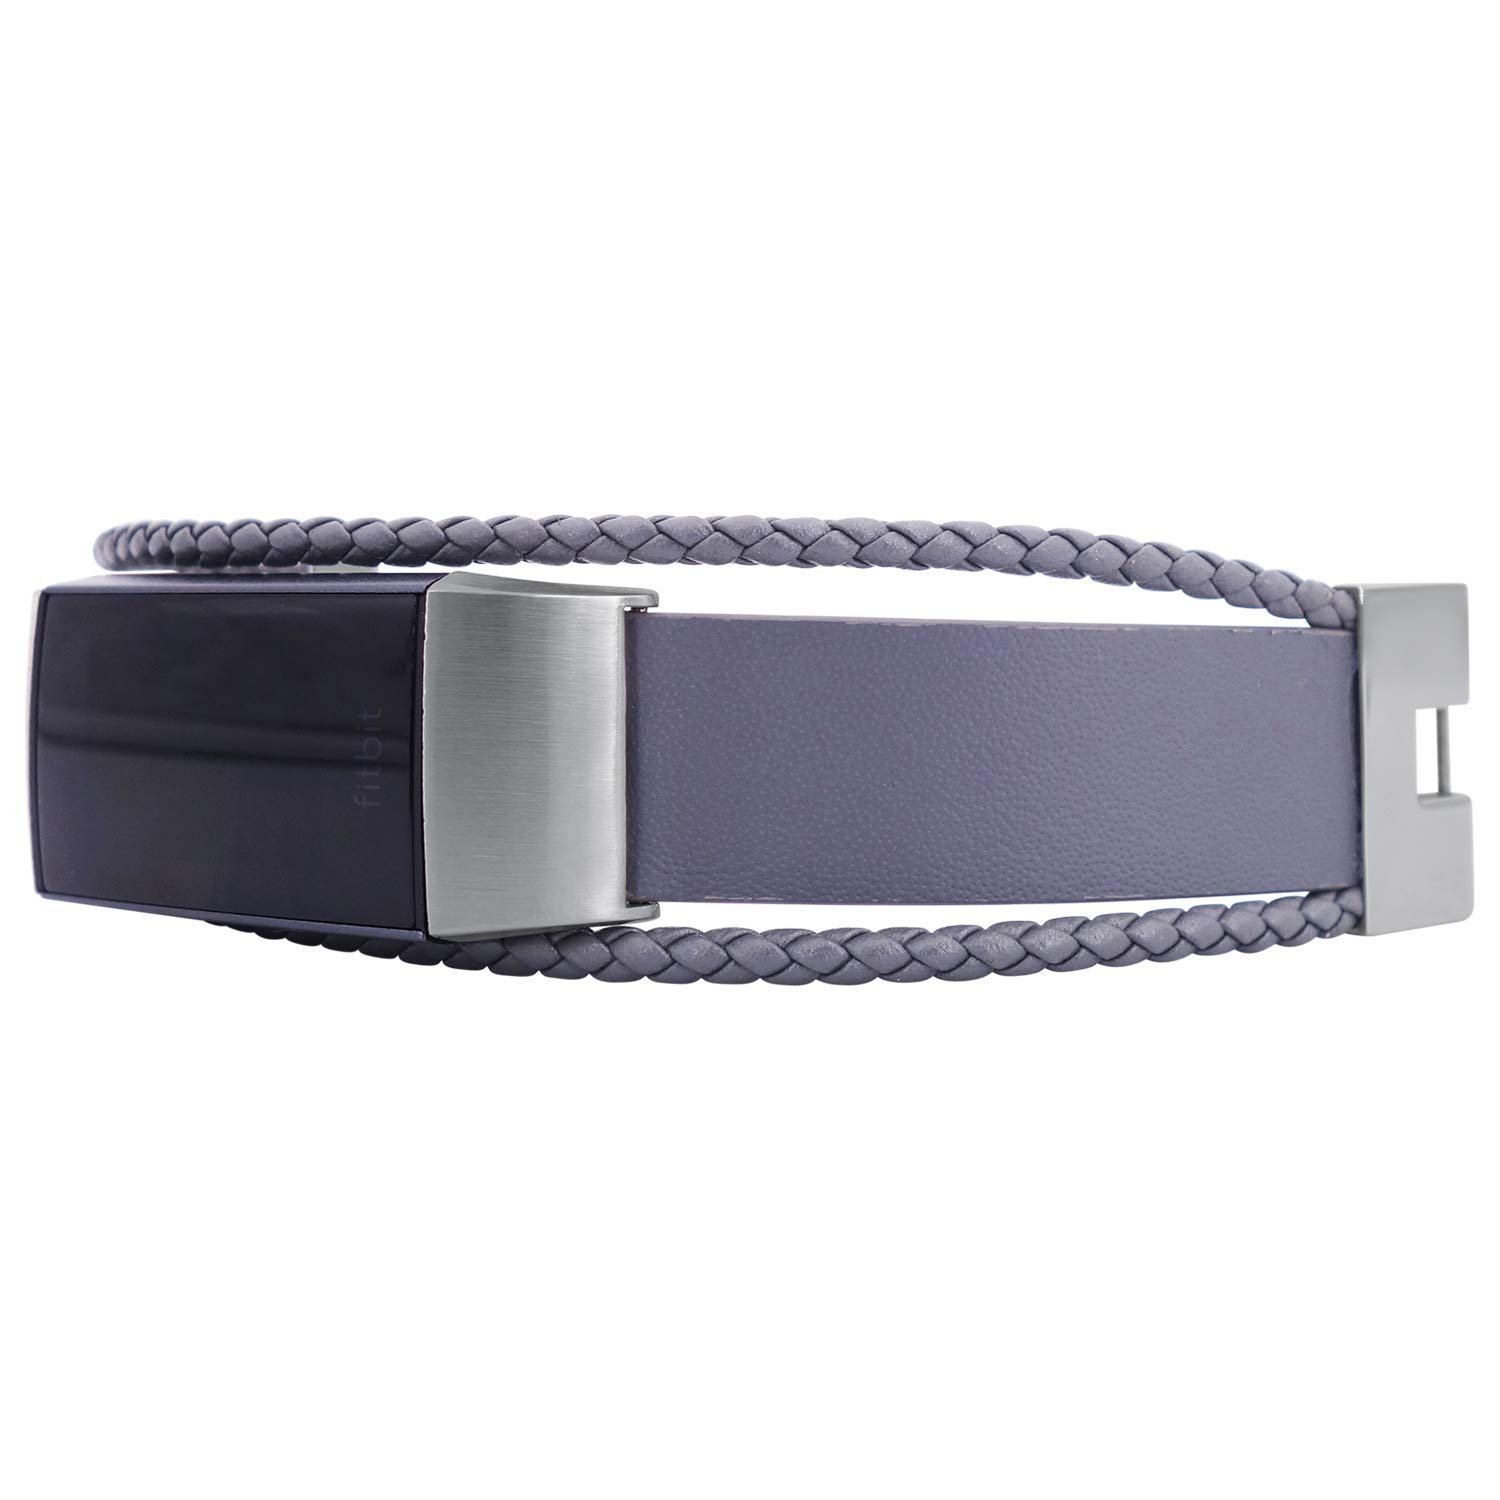 Black//Black Size S-M 5.5-6.5 inches fitjewels Aurel band compatible with Fitbit Charge 3 fitness tracker